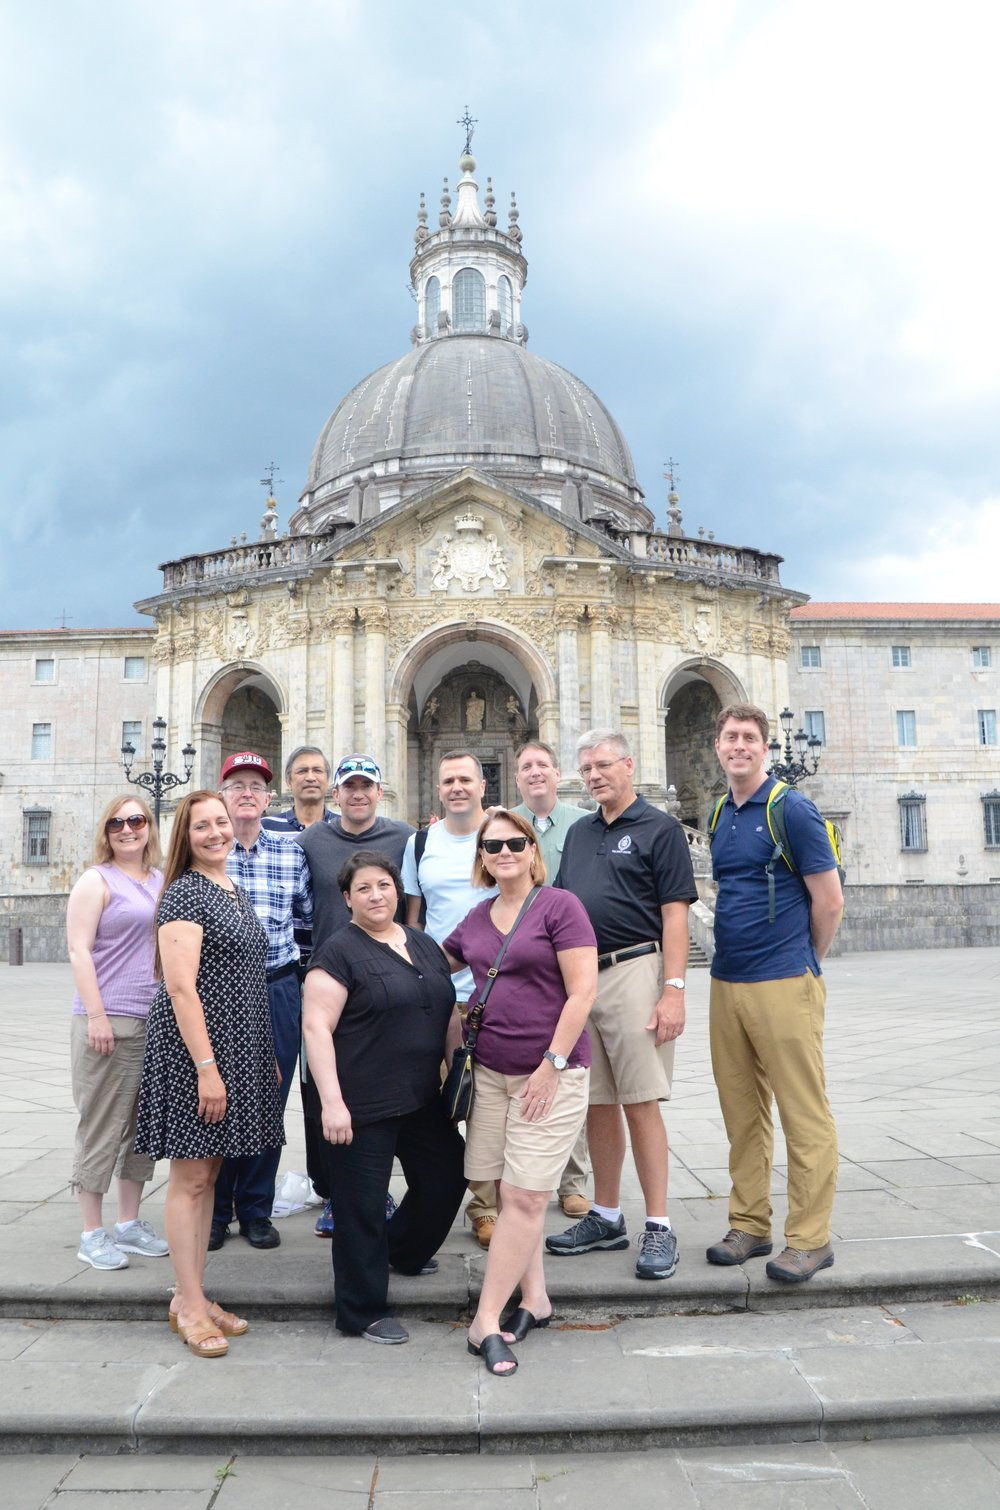 University of Scranton staff and faculty in front of the ancestral home of St. Ignatius (photo by University of Scranton)